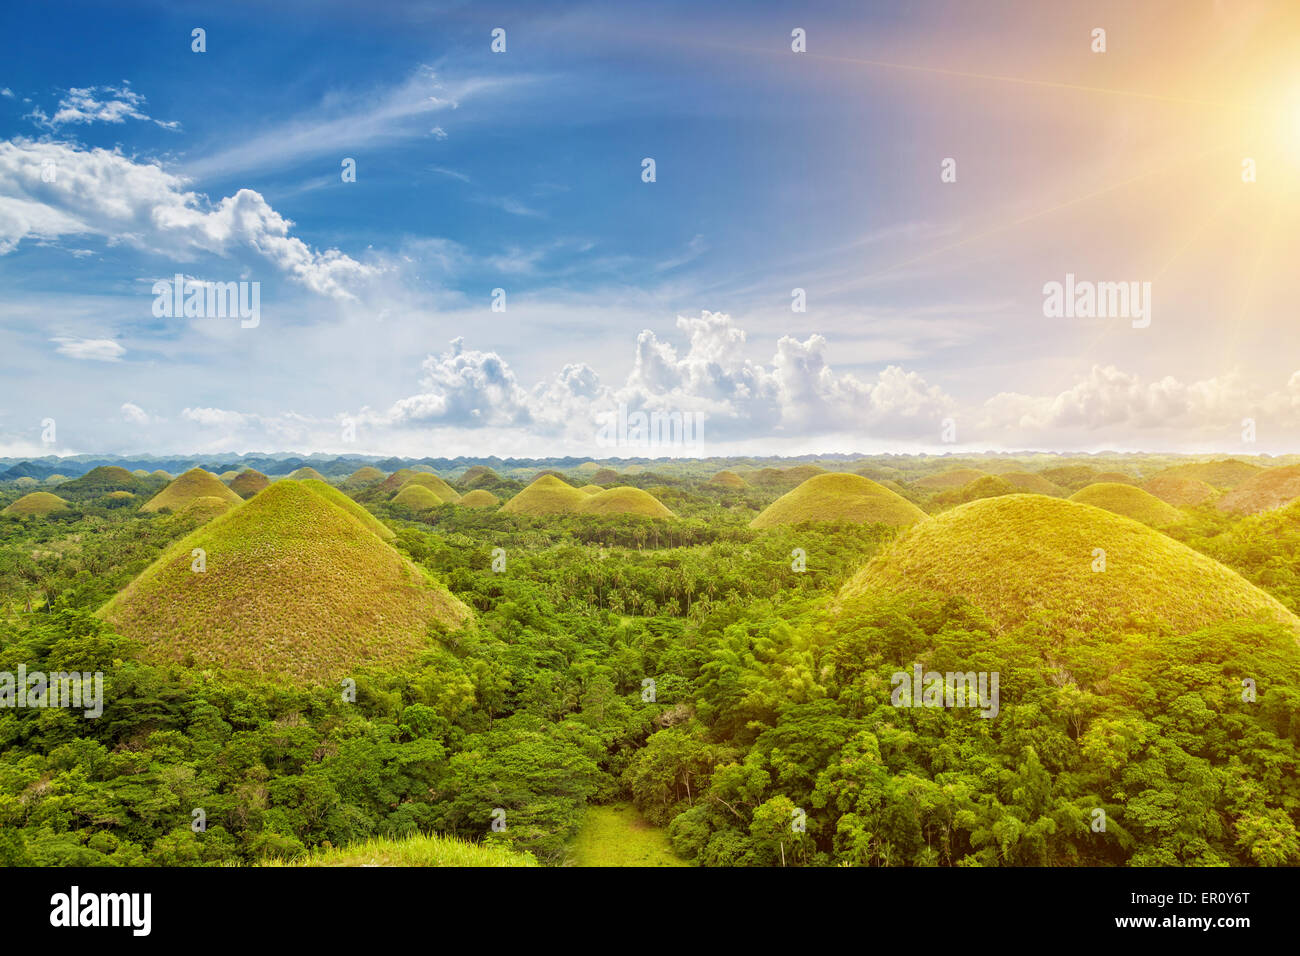 Beautiful scenery of Chocolate Hills in Bohol, Philippines - Stock Image